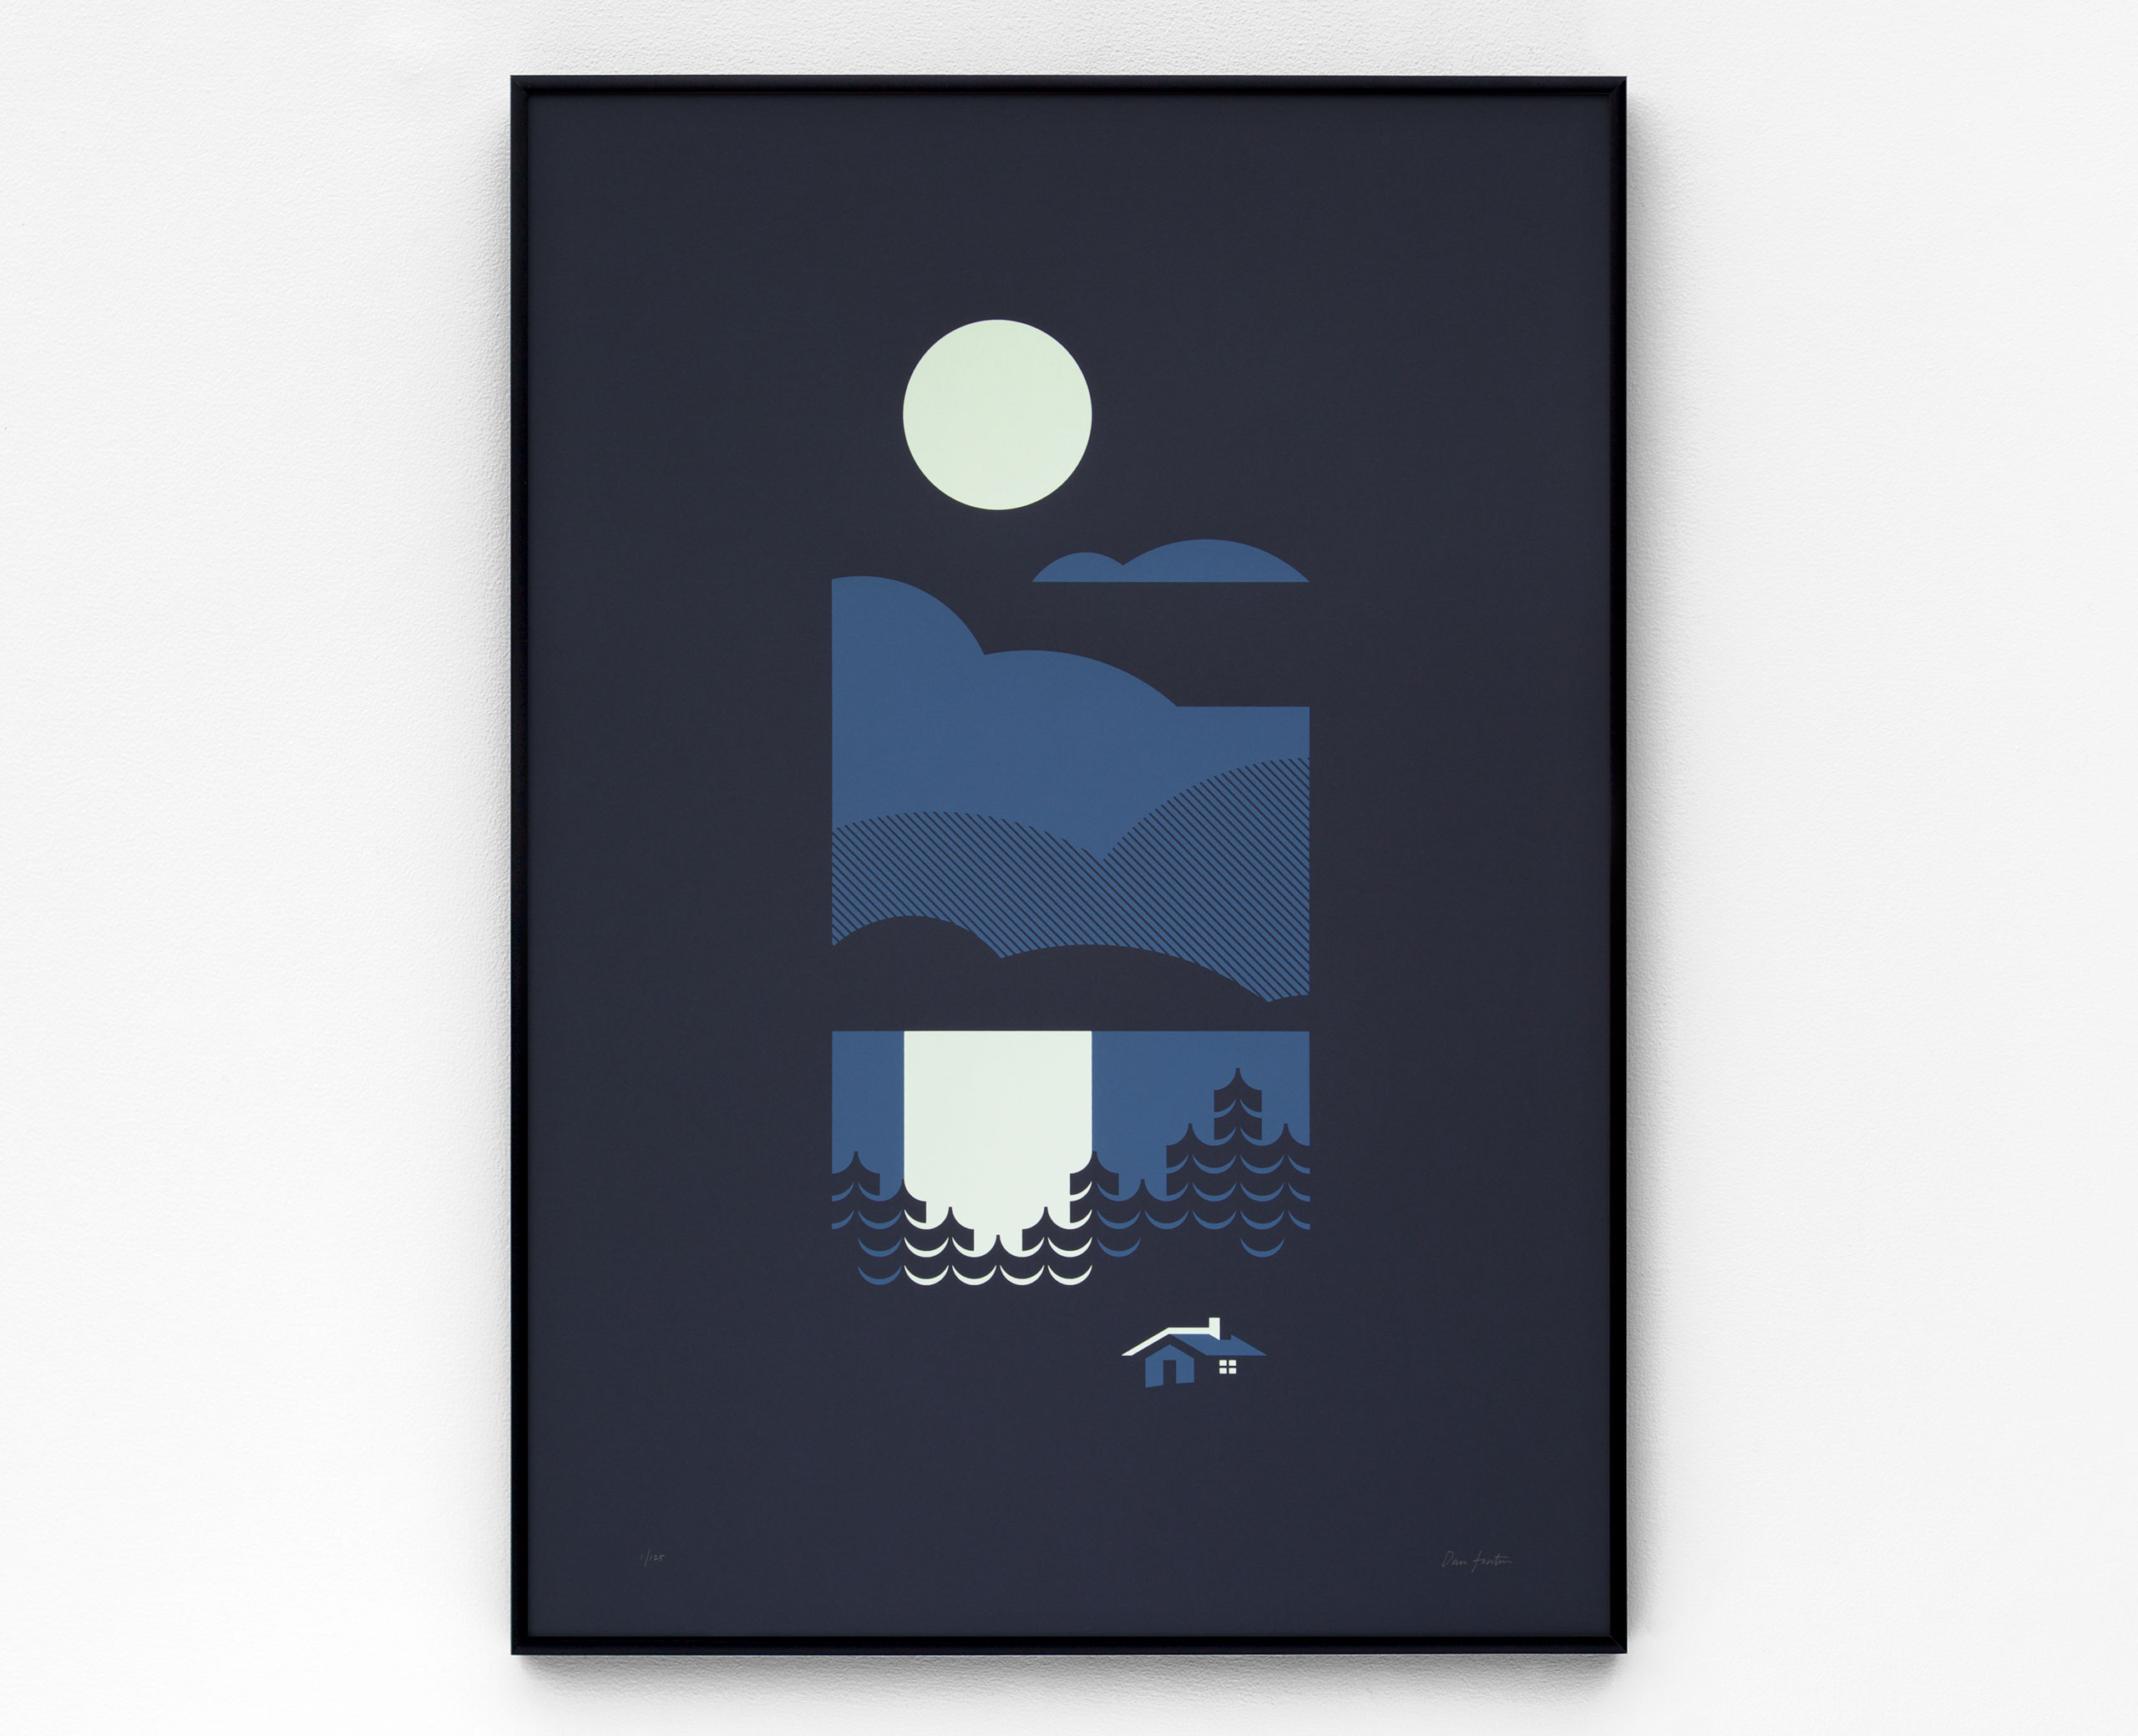 Cabin Screen Print by Dan Forster created for The Lost Fox